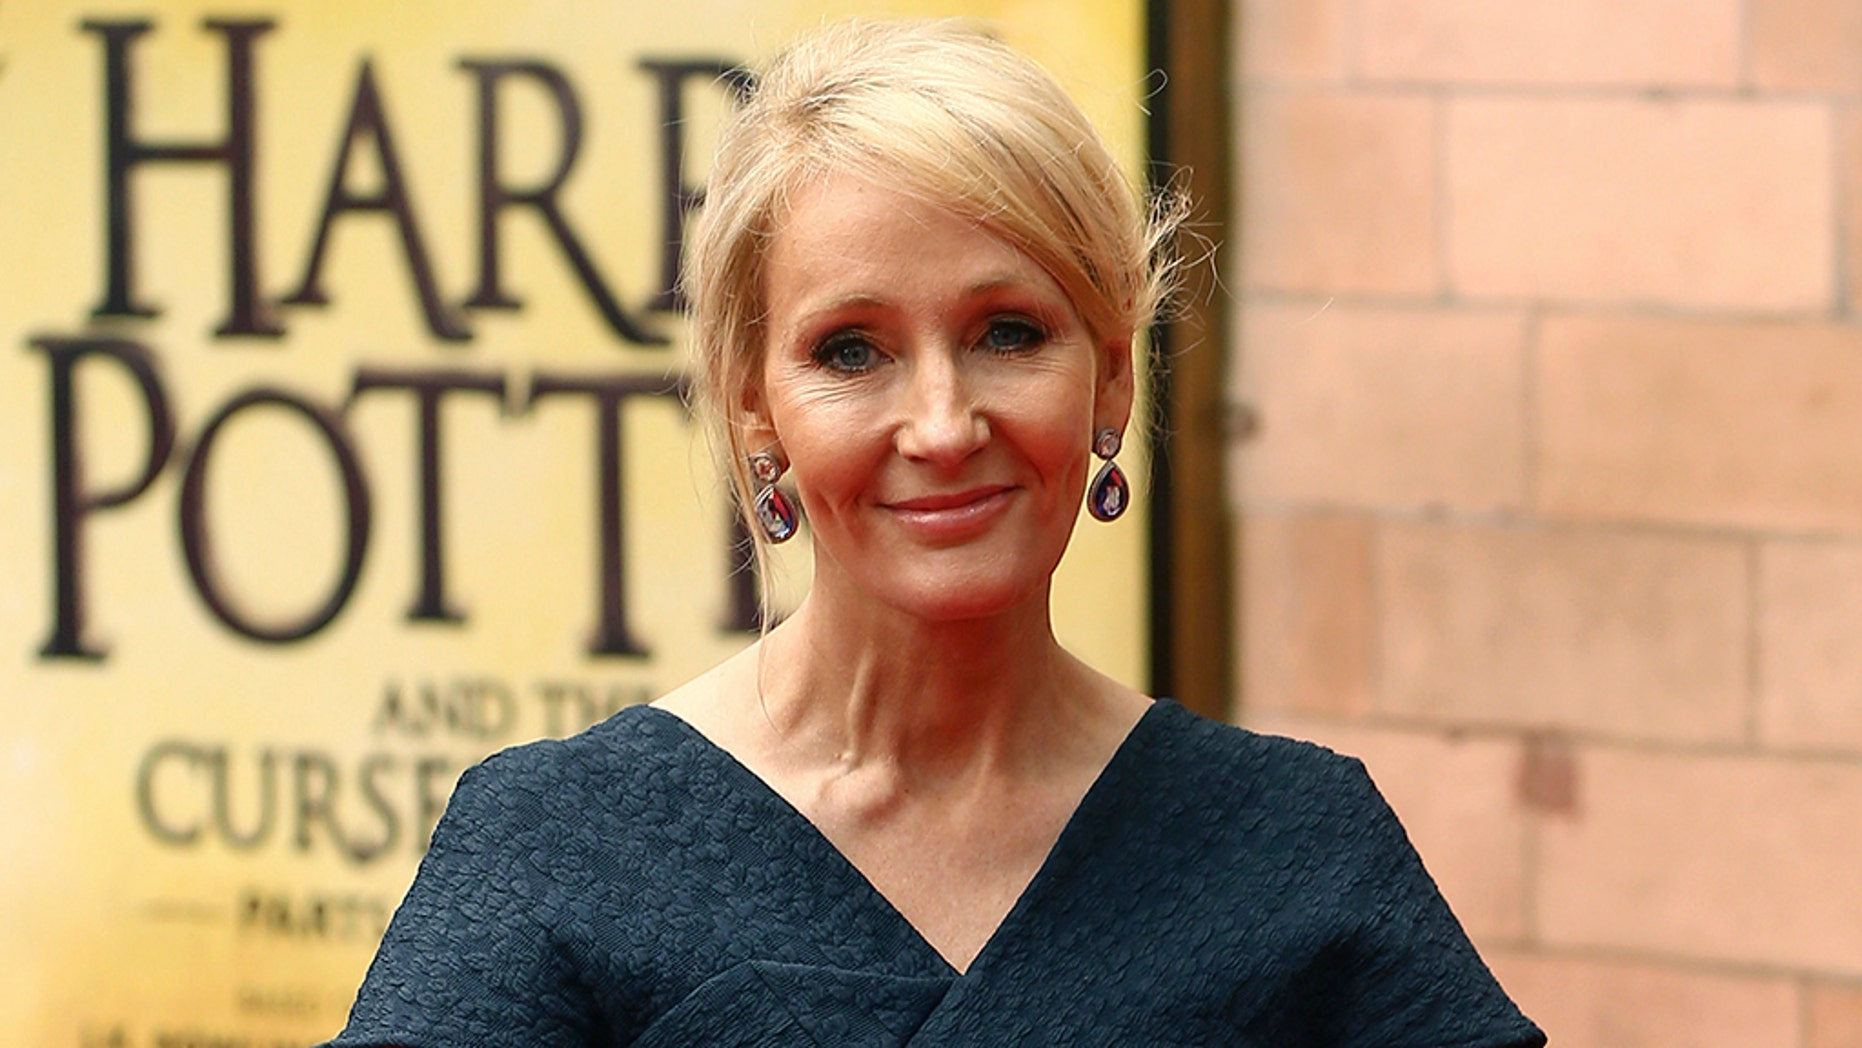 J.K. Rowling faces a backlash for the recent comments she made in an interview for DVD and Blu-ray features in her film